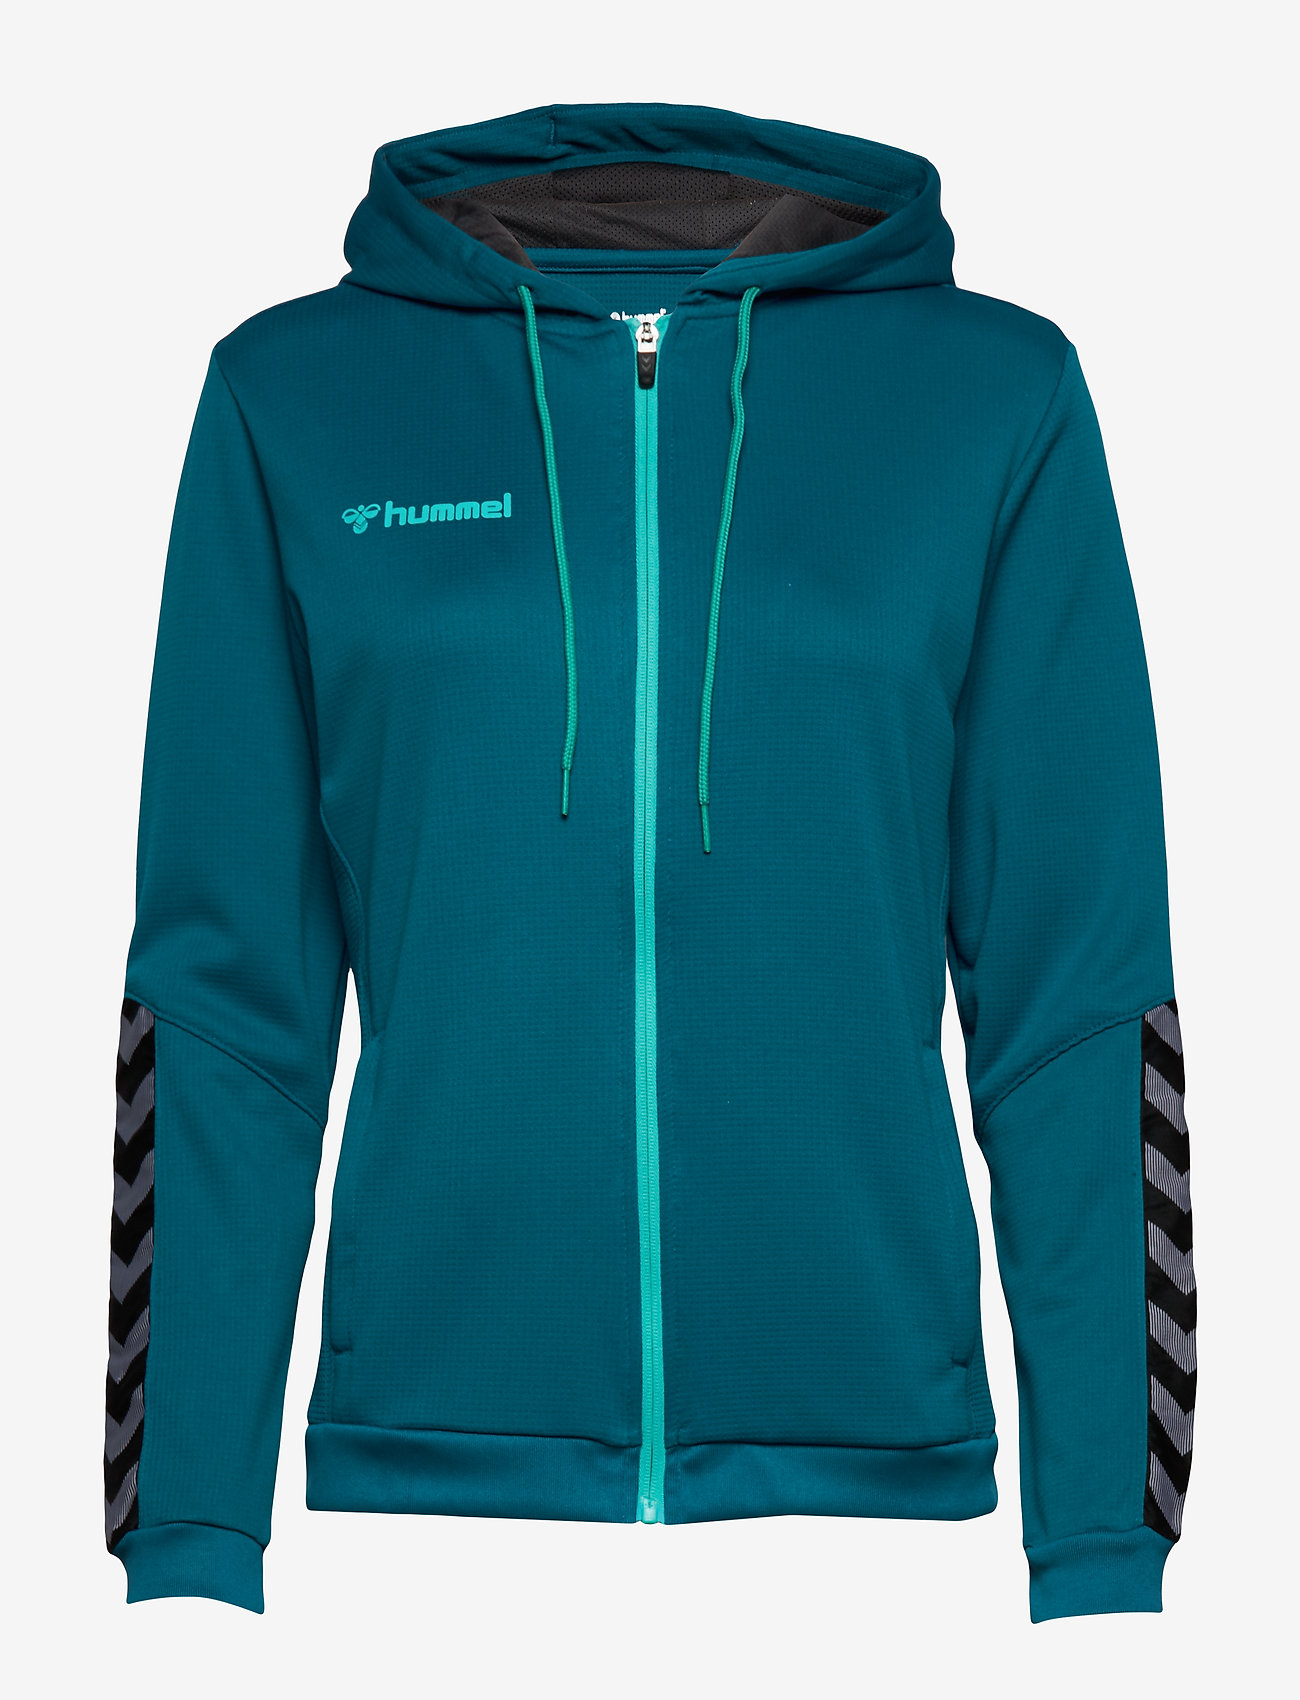 Hummel - hmlAUTHENTIC POLY ZIP HOODIE WOMAN - hupparit - celestial - 0